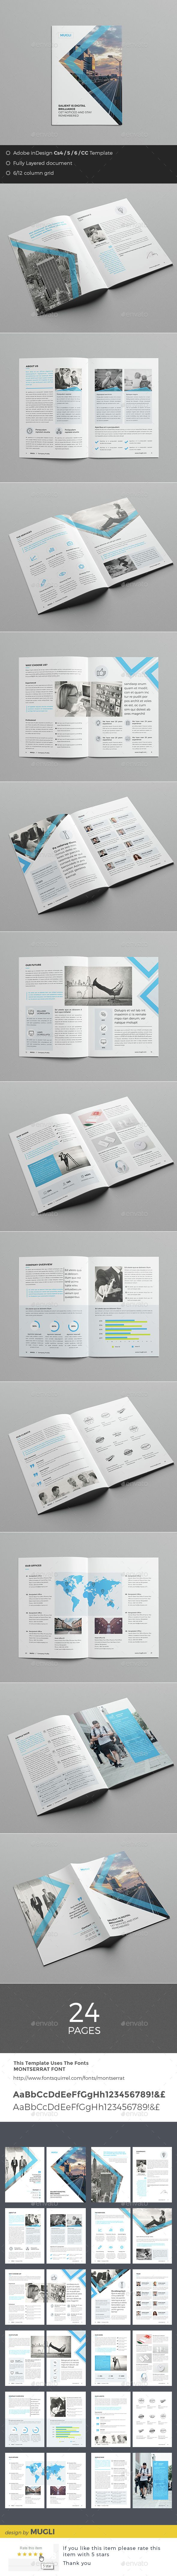 Business Brochure Template 	InDesign INDD. Download here: http://graphicriver.net/item/business-brochure/14734303?ref=ksioks